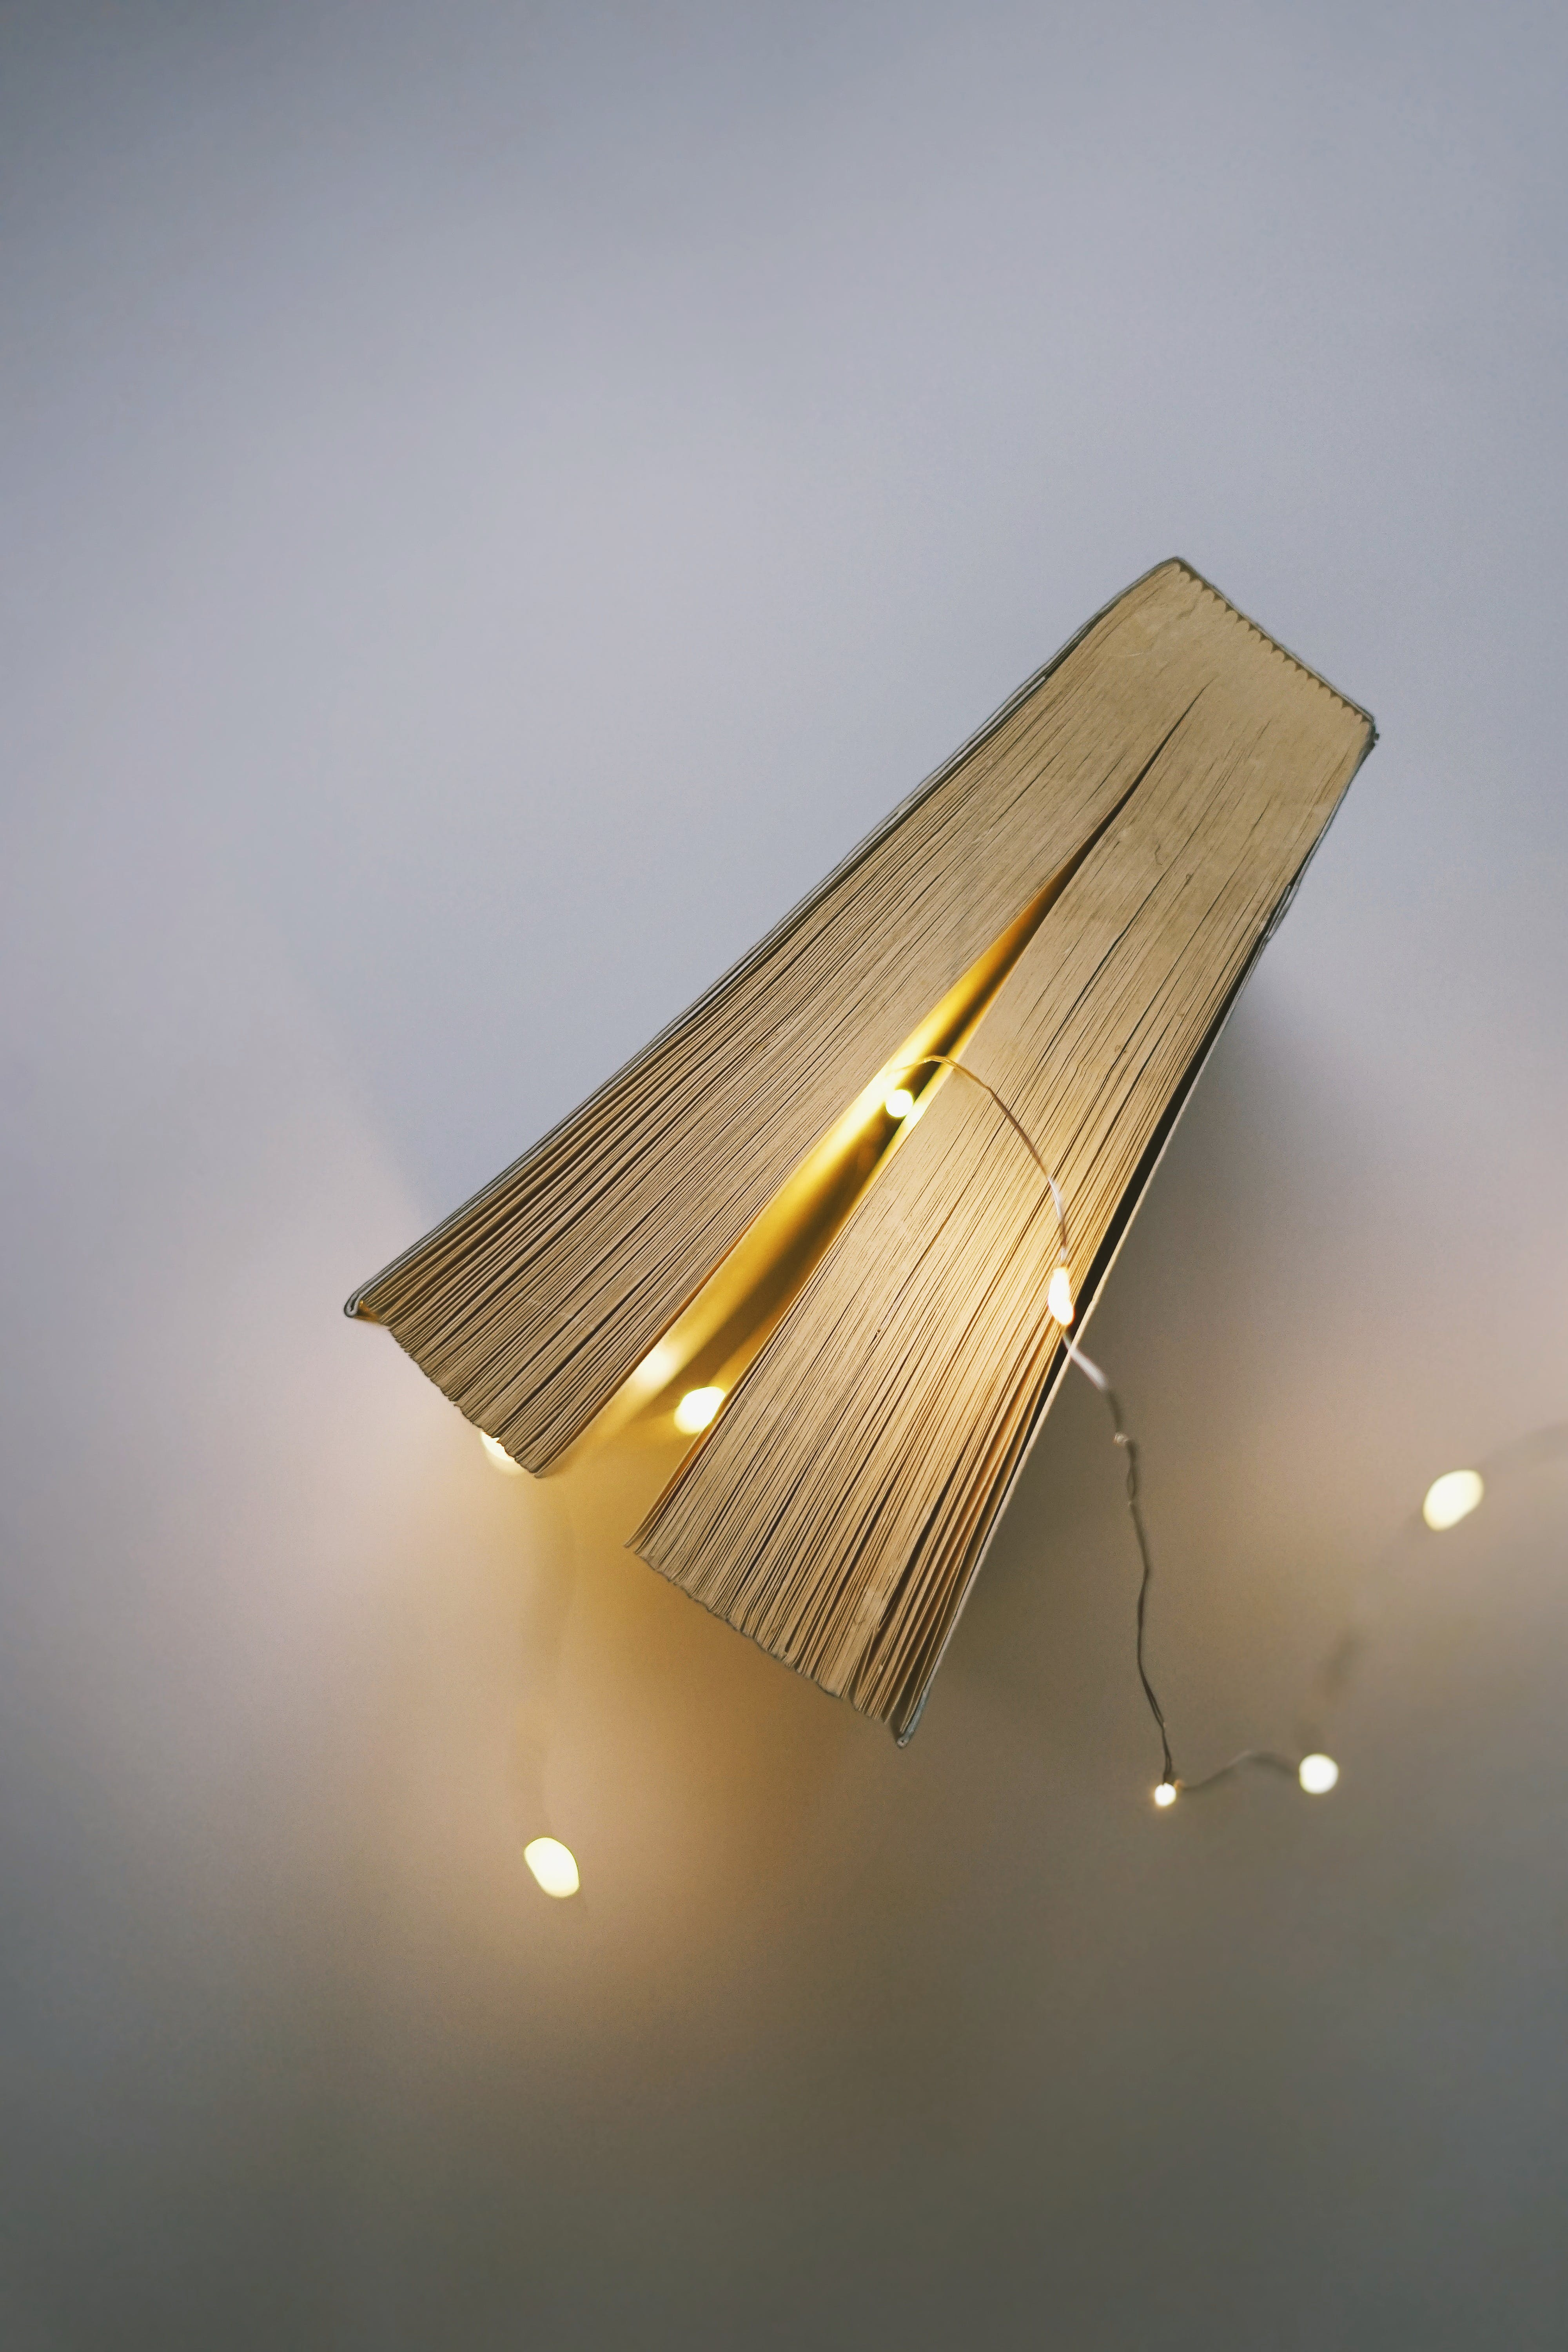 Closed Book Beside Gray String Light on White Surface